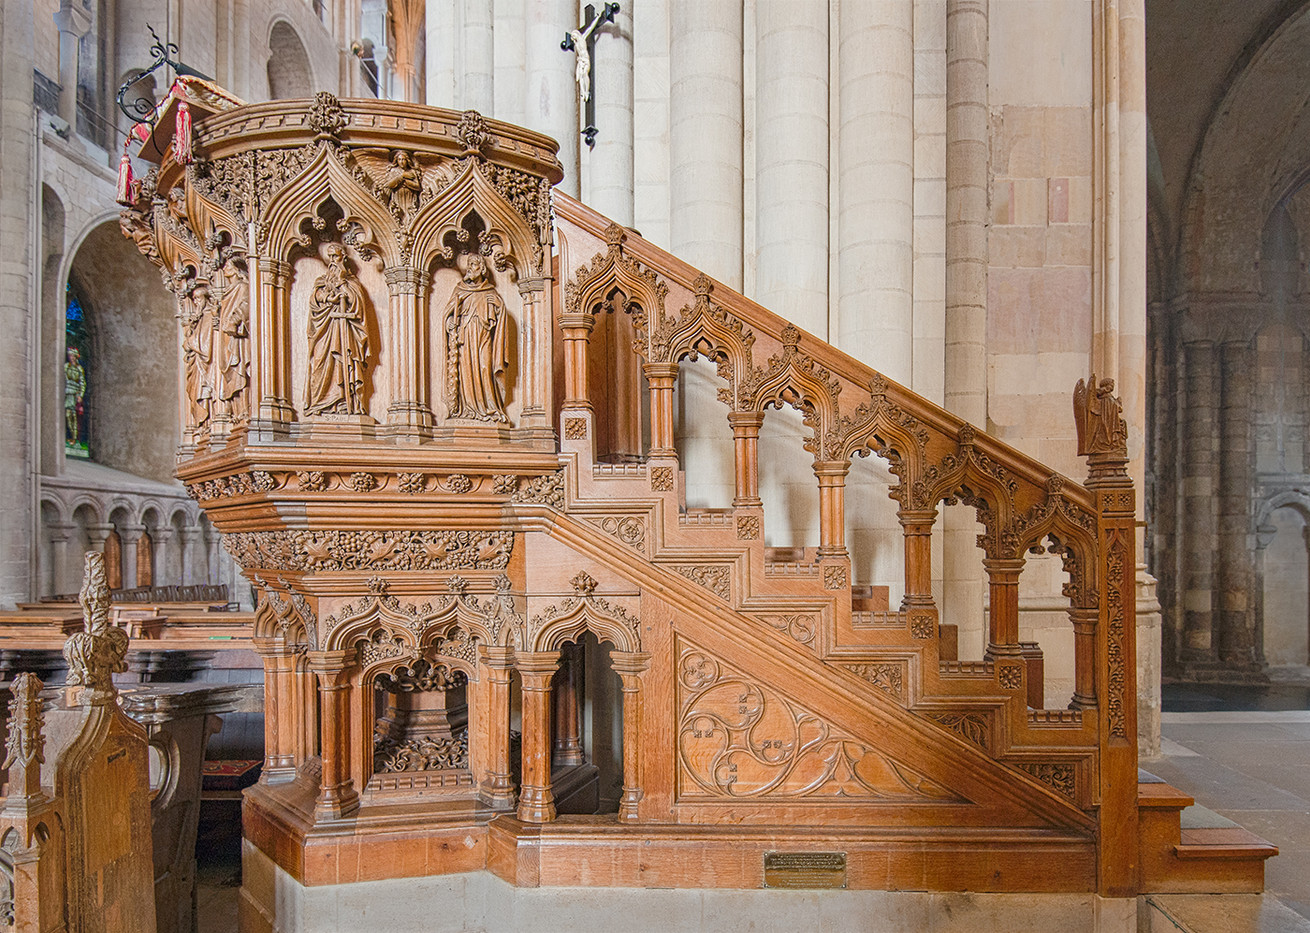 17 CARVED WOOD PULPIT NORWICH CATHEDRAL by Alan Cork